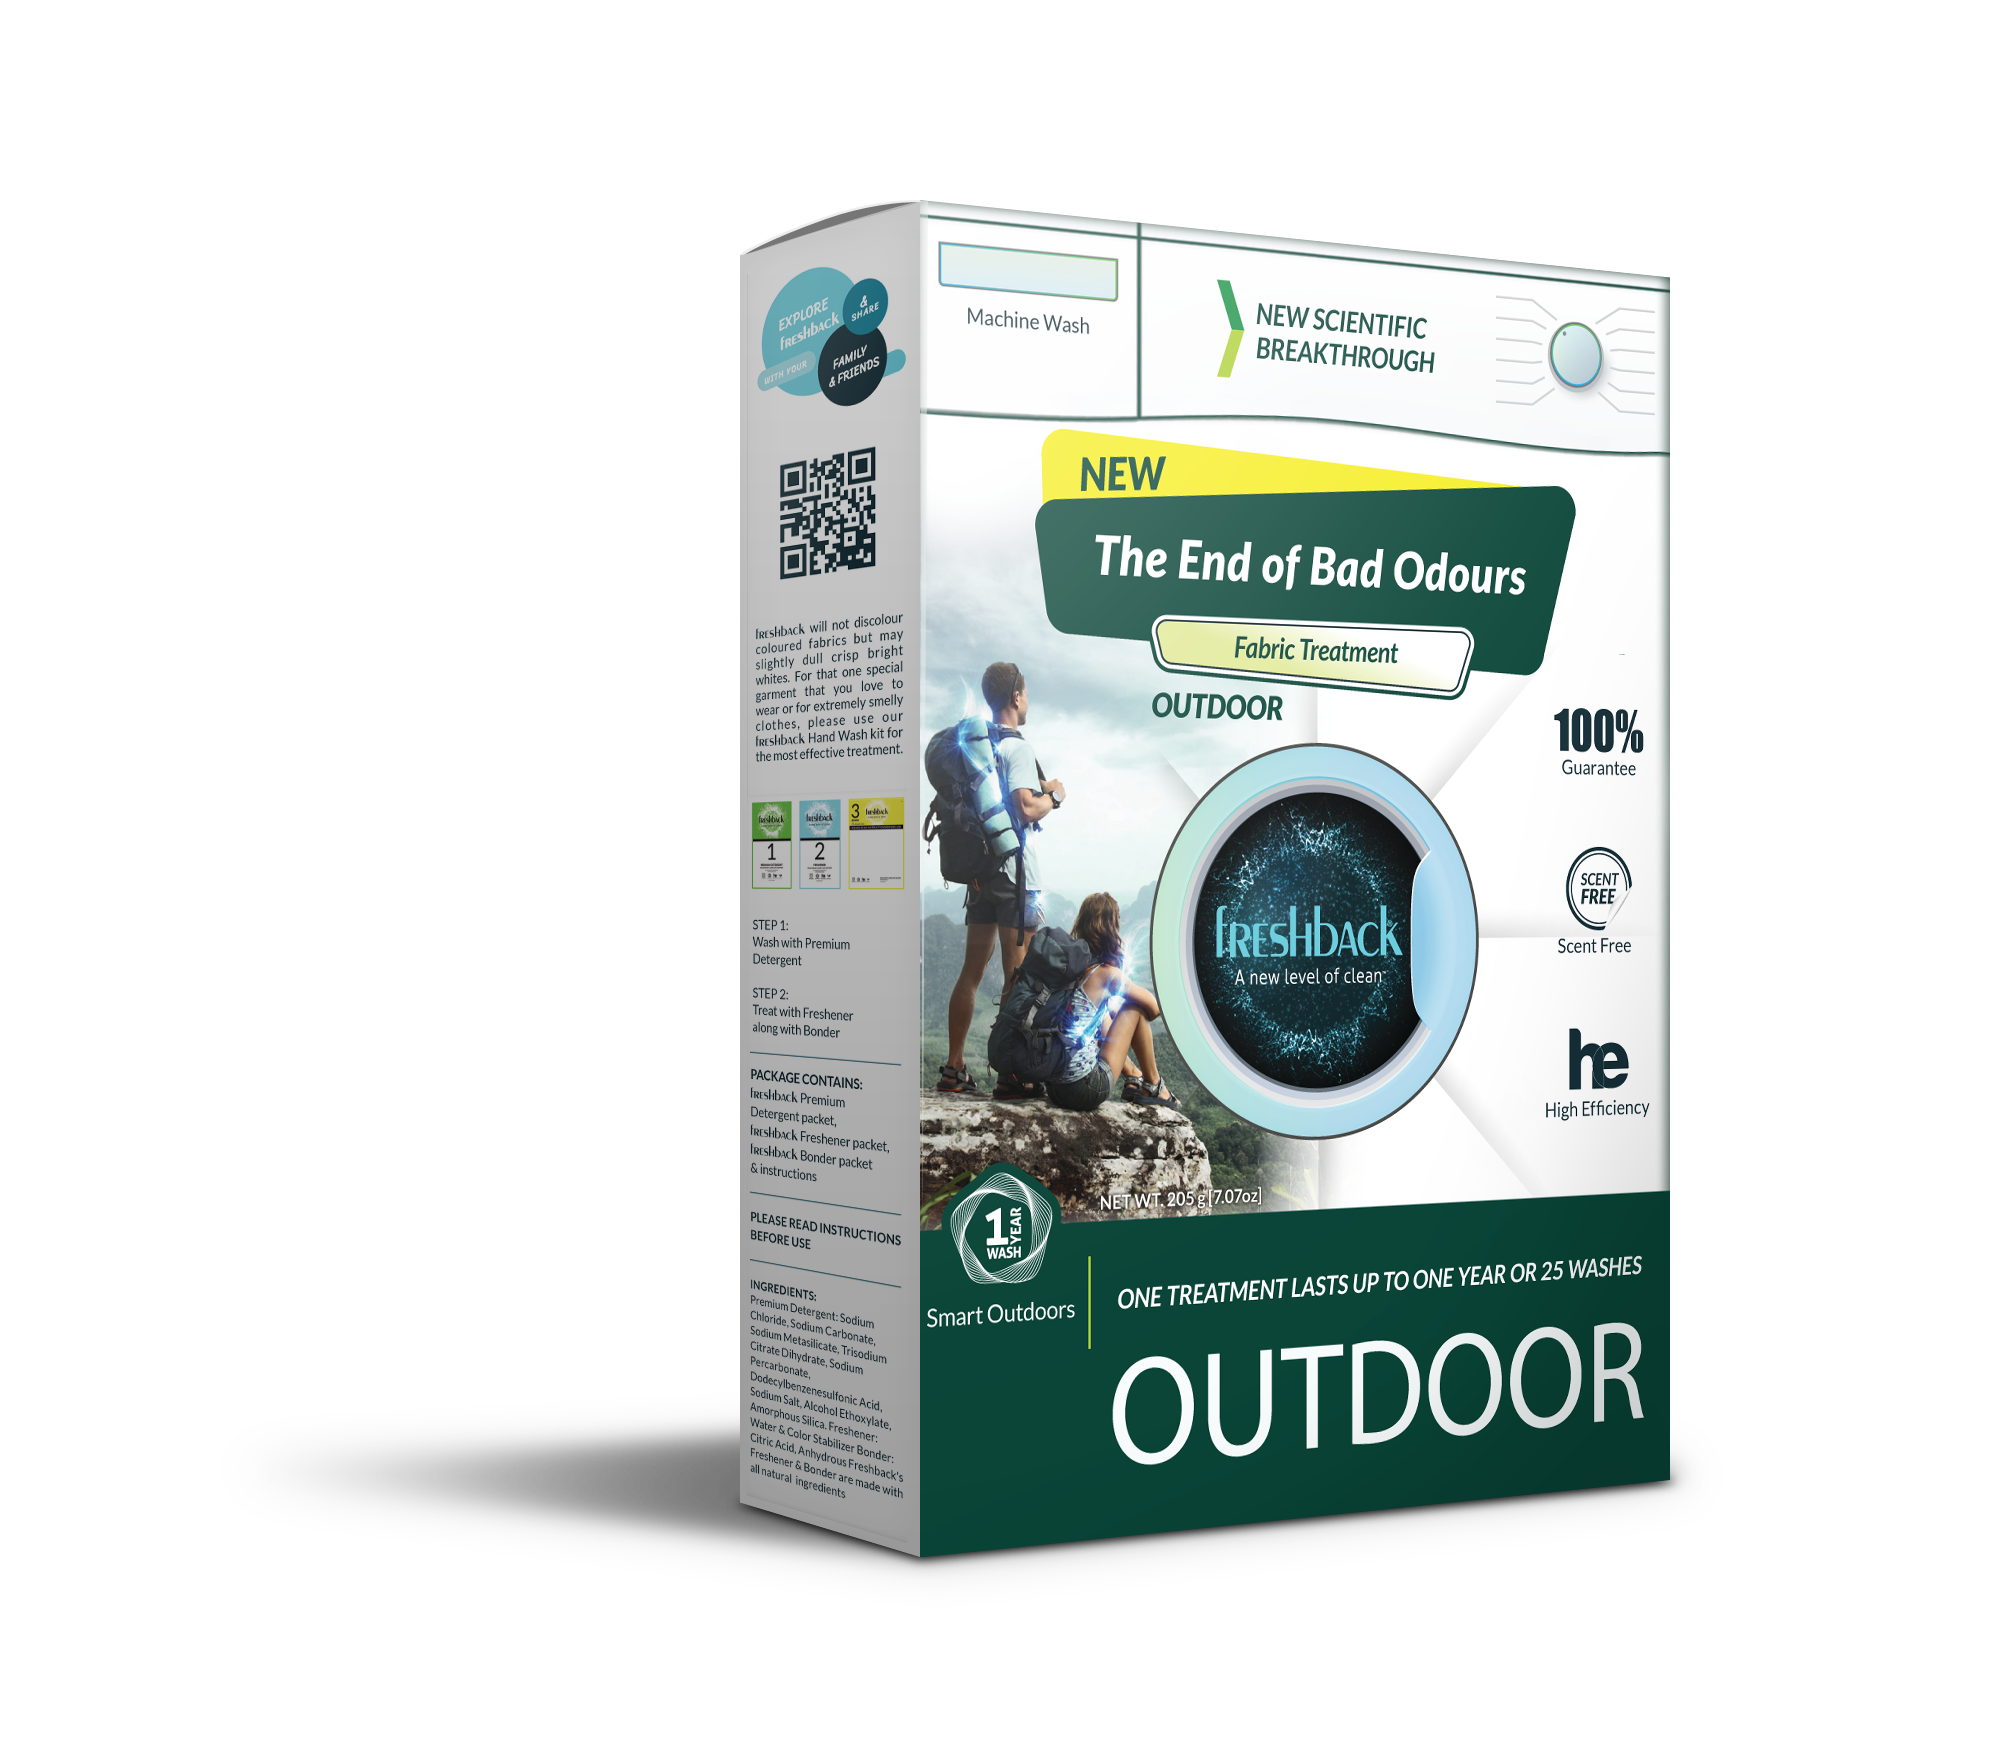 OUTDOOR_MW Package_HR